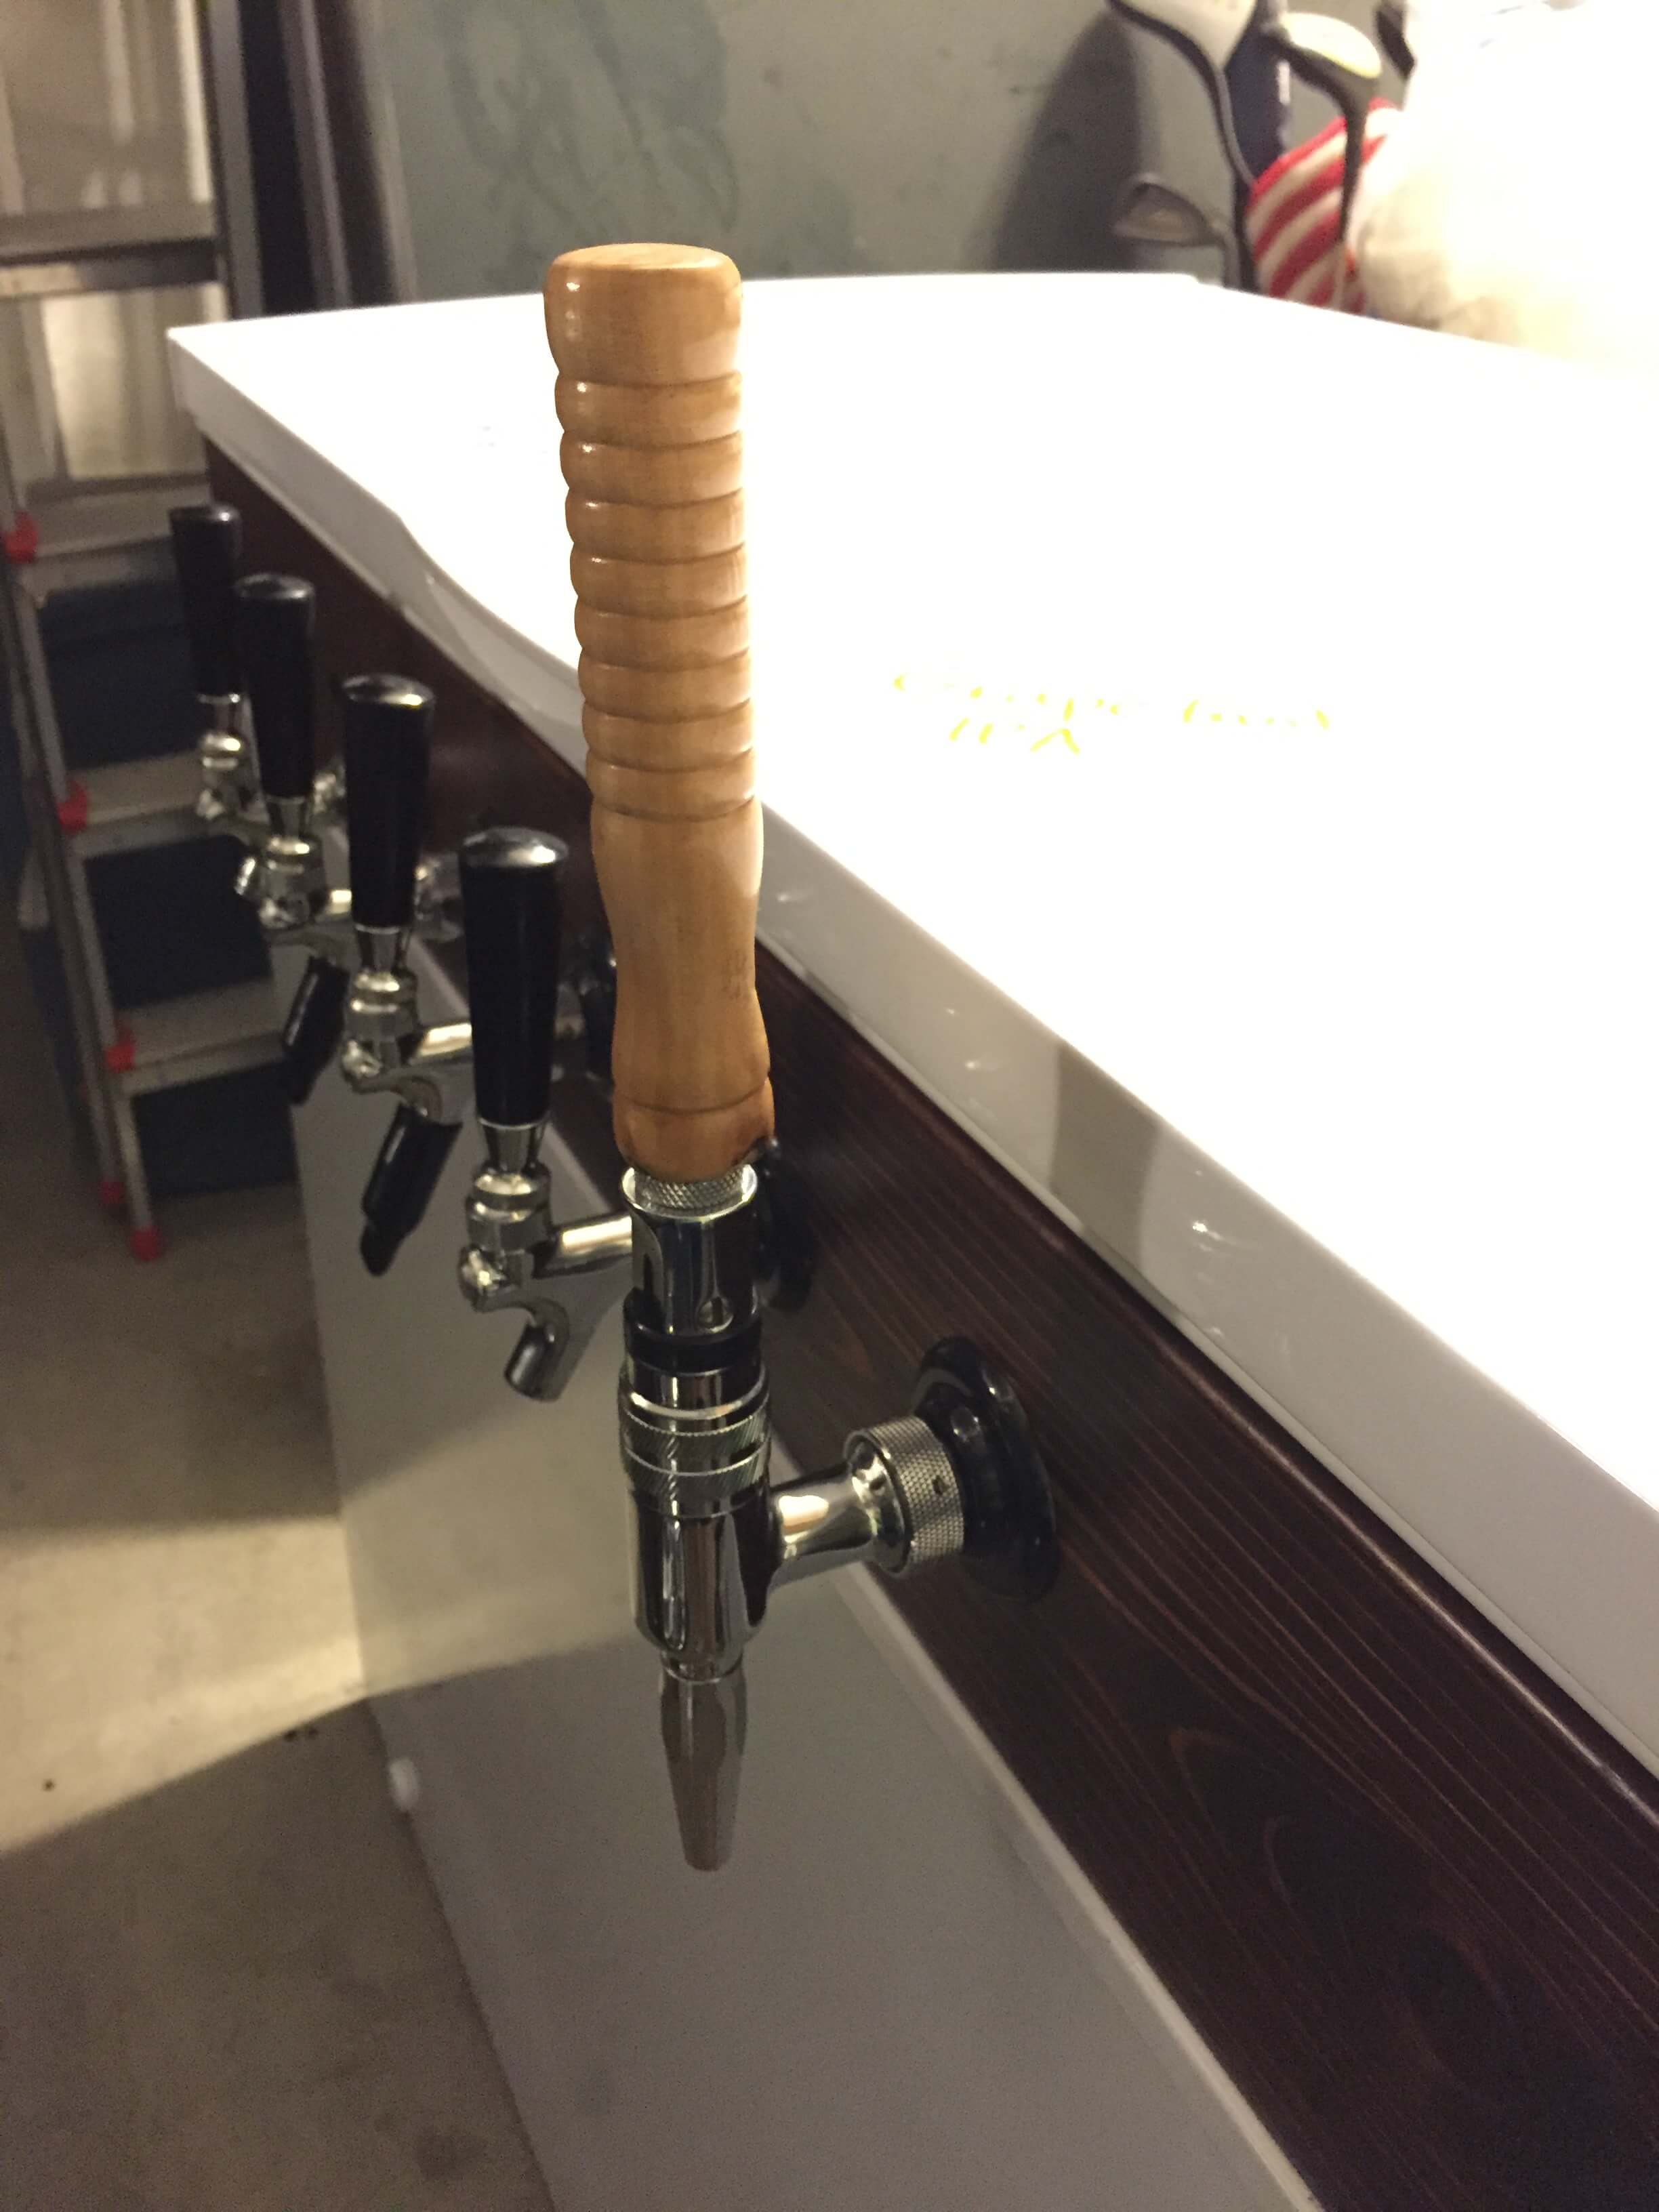 Umbrella IPA Tap Handle Homebrew